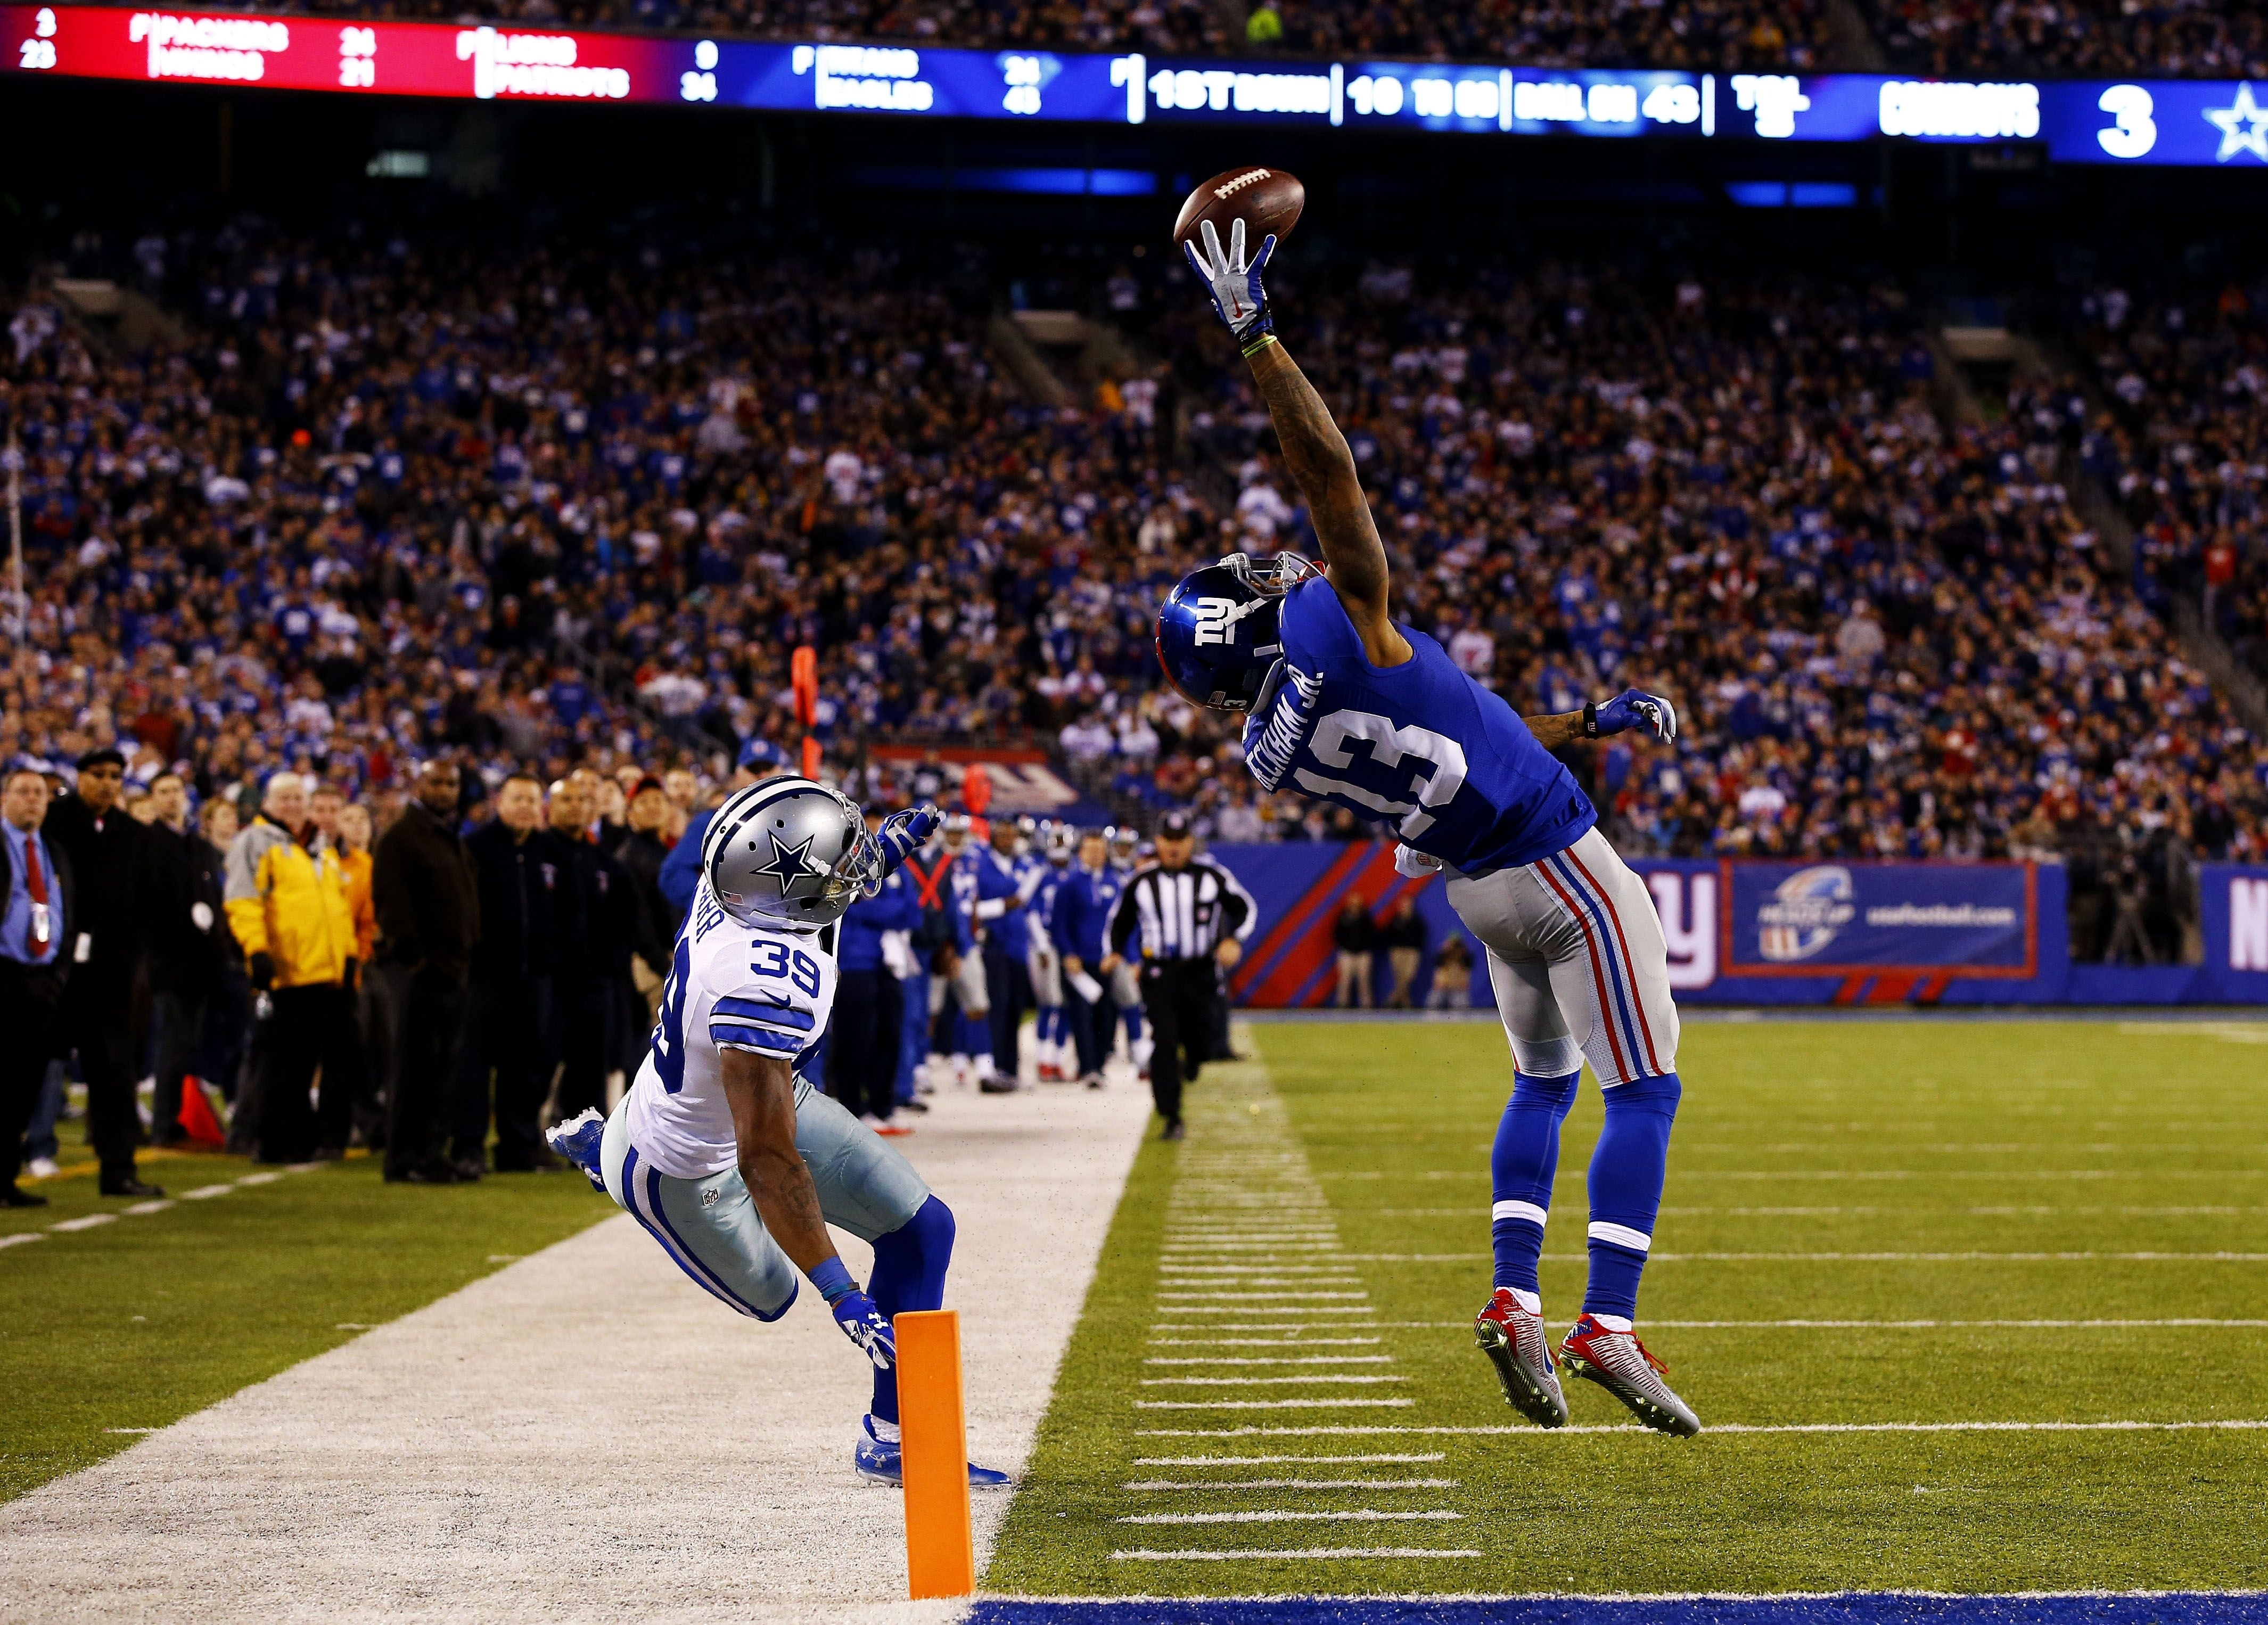 it sure looks like odell beckham jr. made that catch with three